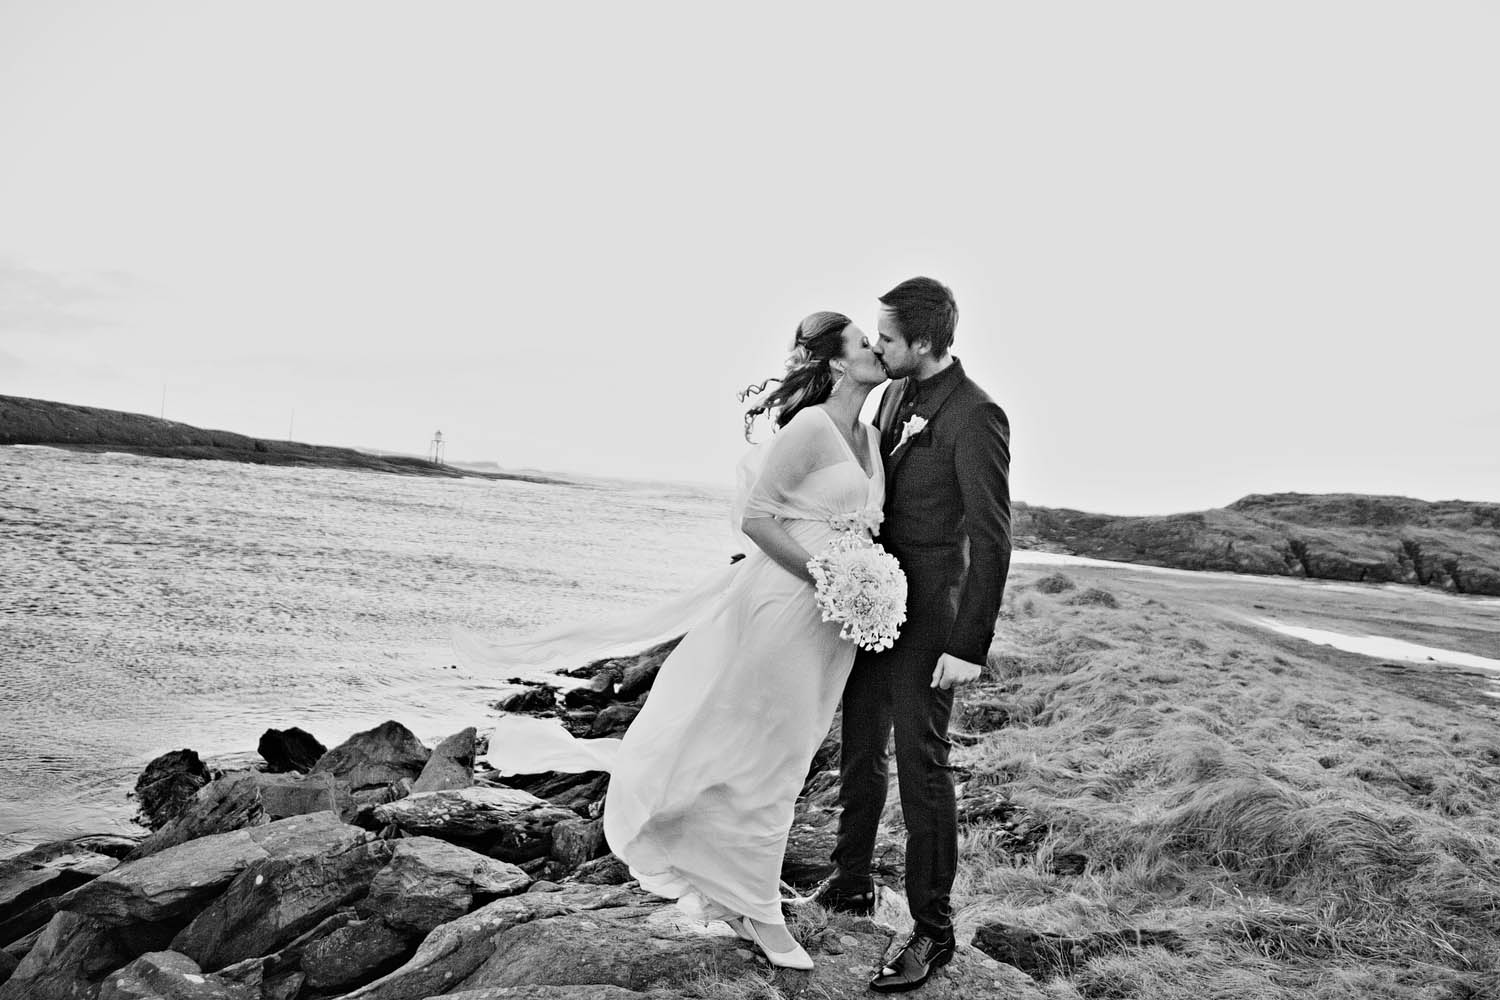 RivetsAndRoses, Norwegian Wedding, DesireeMostad, Siw og Jan Frode, Stavanger, Norge, International Wedding Photographer, North Sea, Leila Hafzi, TV2